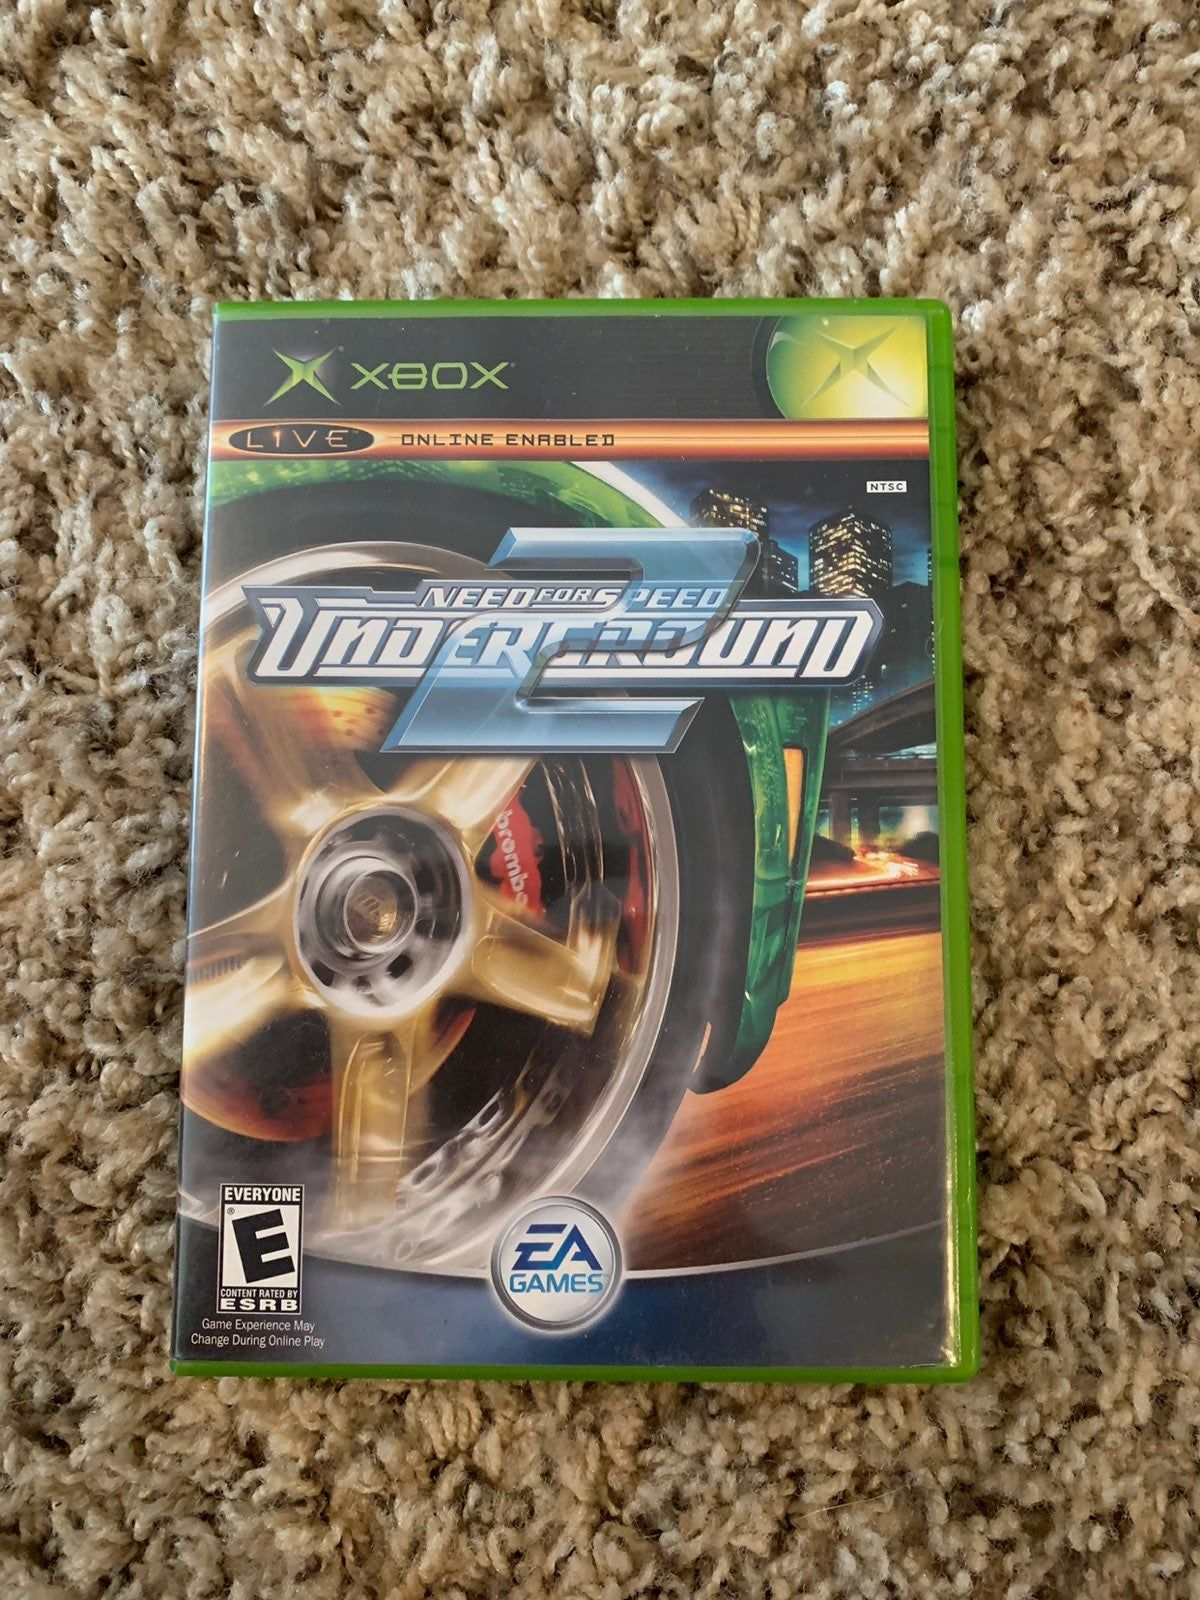 Selling Need For Speed Underground 2 Super Fun Racing Game For